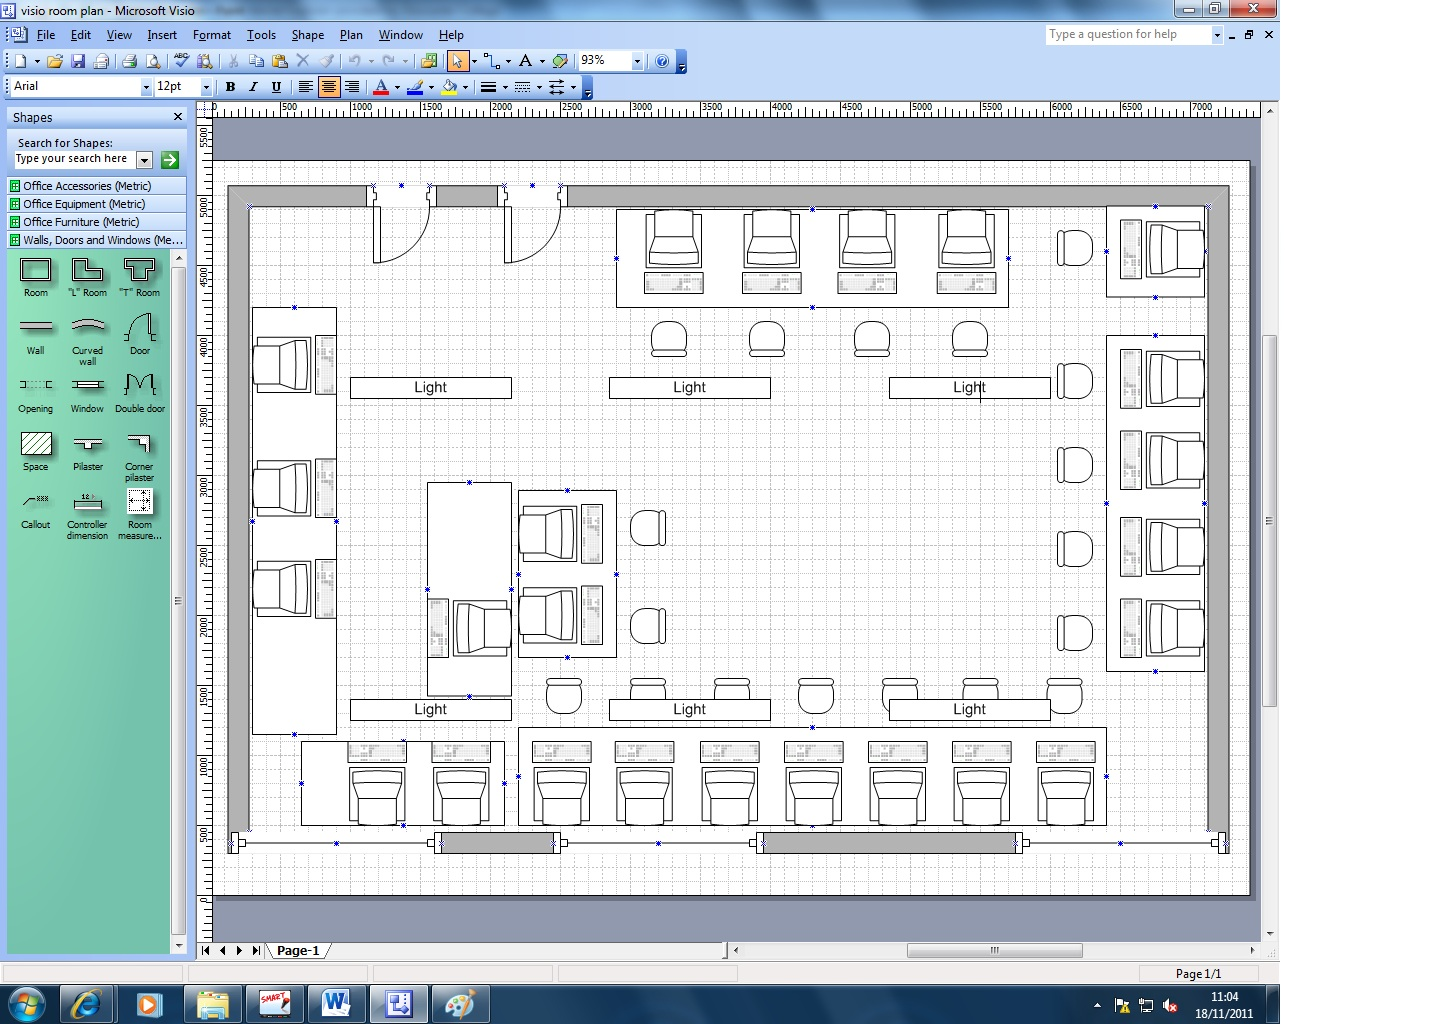 electrical wiring drawing for house images wiring diagram builder clip art besides easy kitchen drawing on visio home plan template